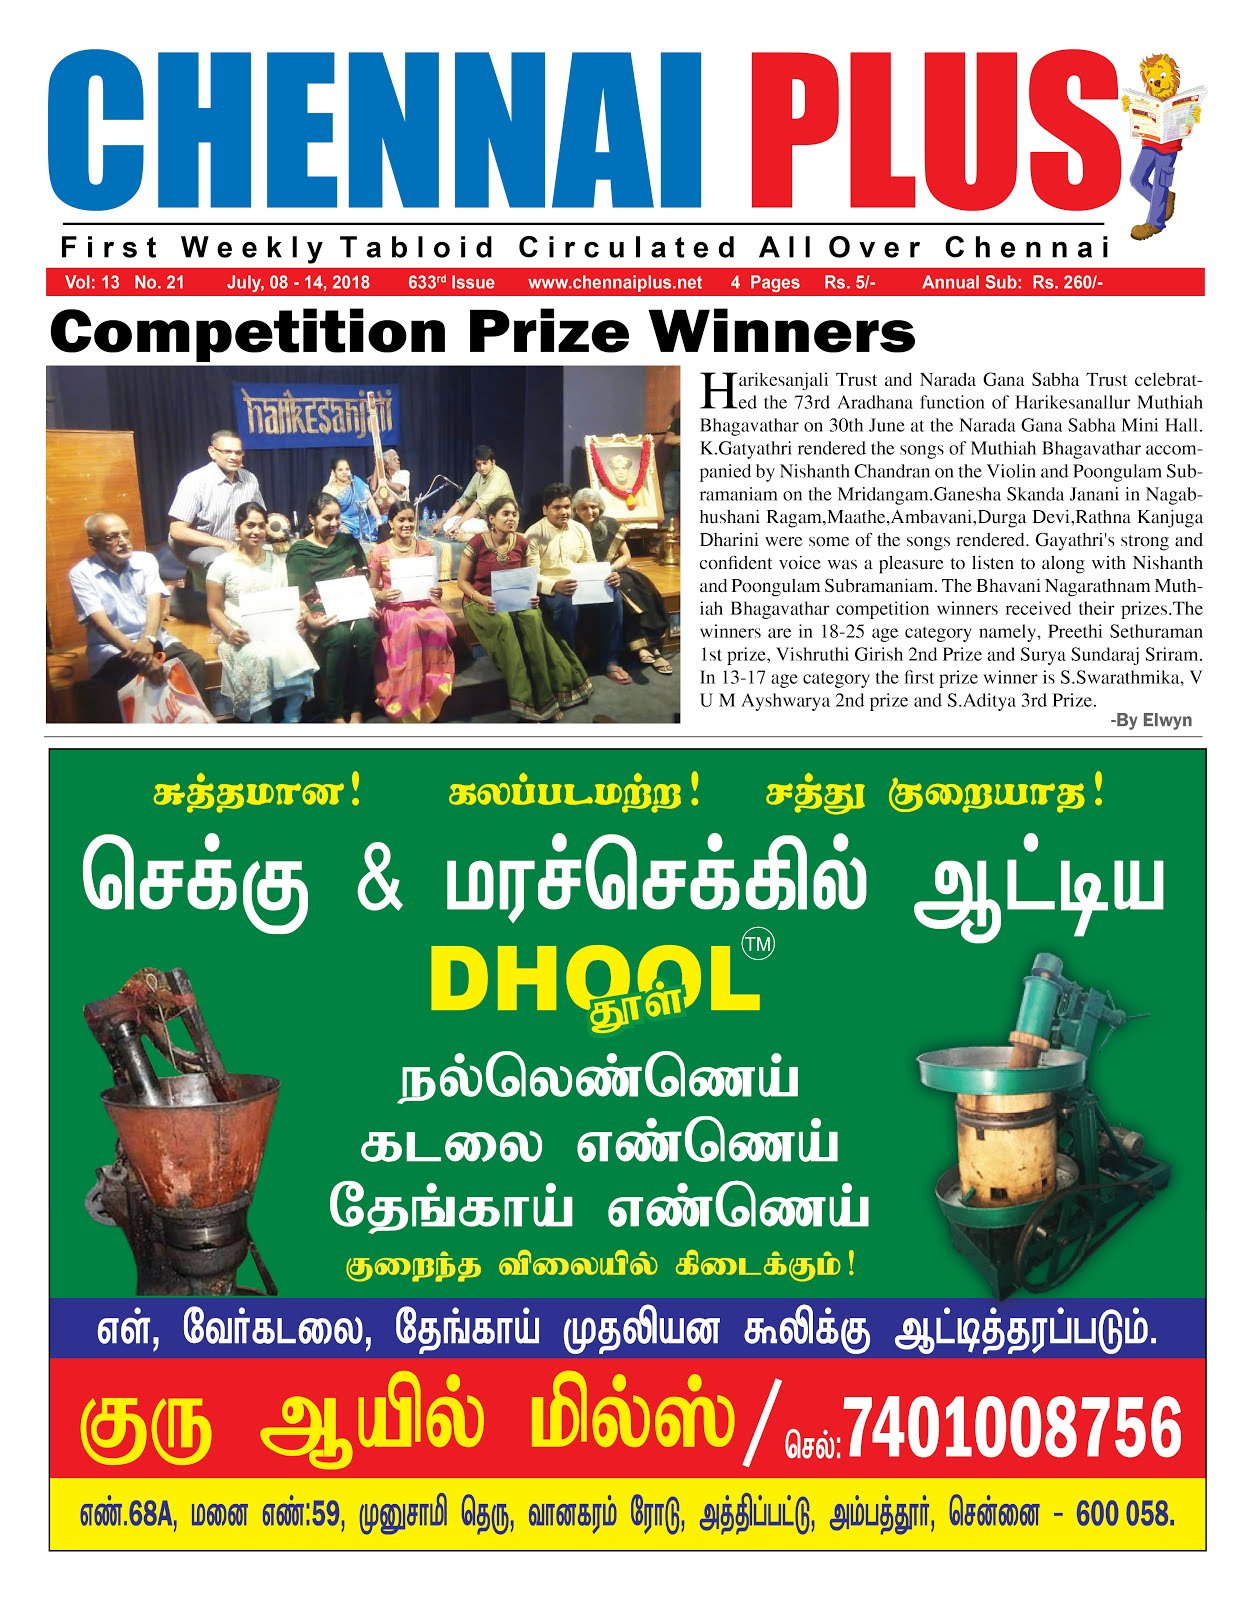 Chennai Plus_08.07.2018_Issue